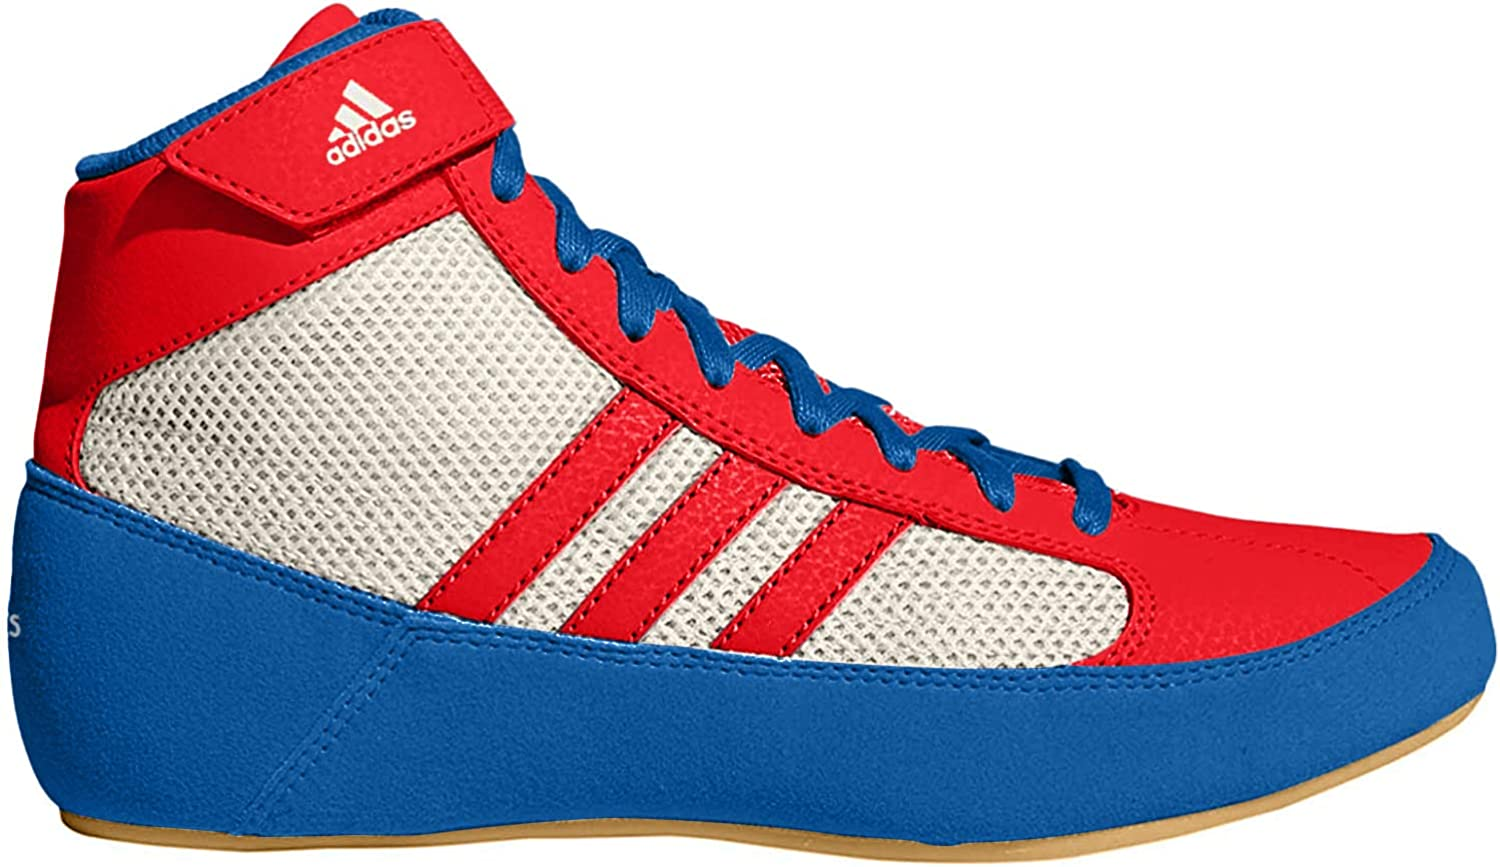 última selección de 2019 precio de calle talla 40 Amazon.com | adidas HVC 2 Youth Laced Wrestling Shoes - Blue/Red/White -  3.5 | Athletic